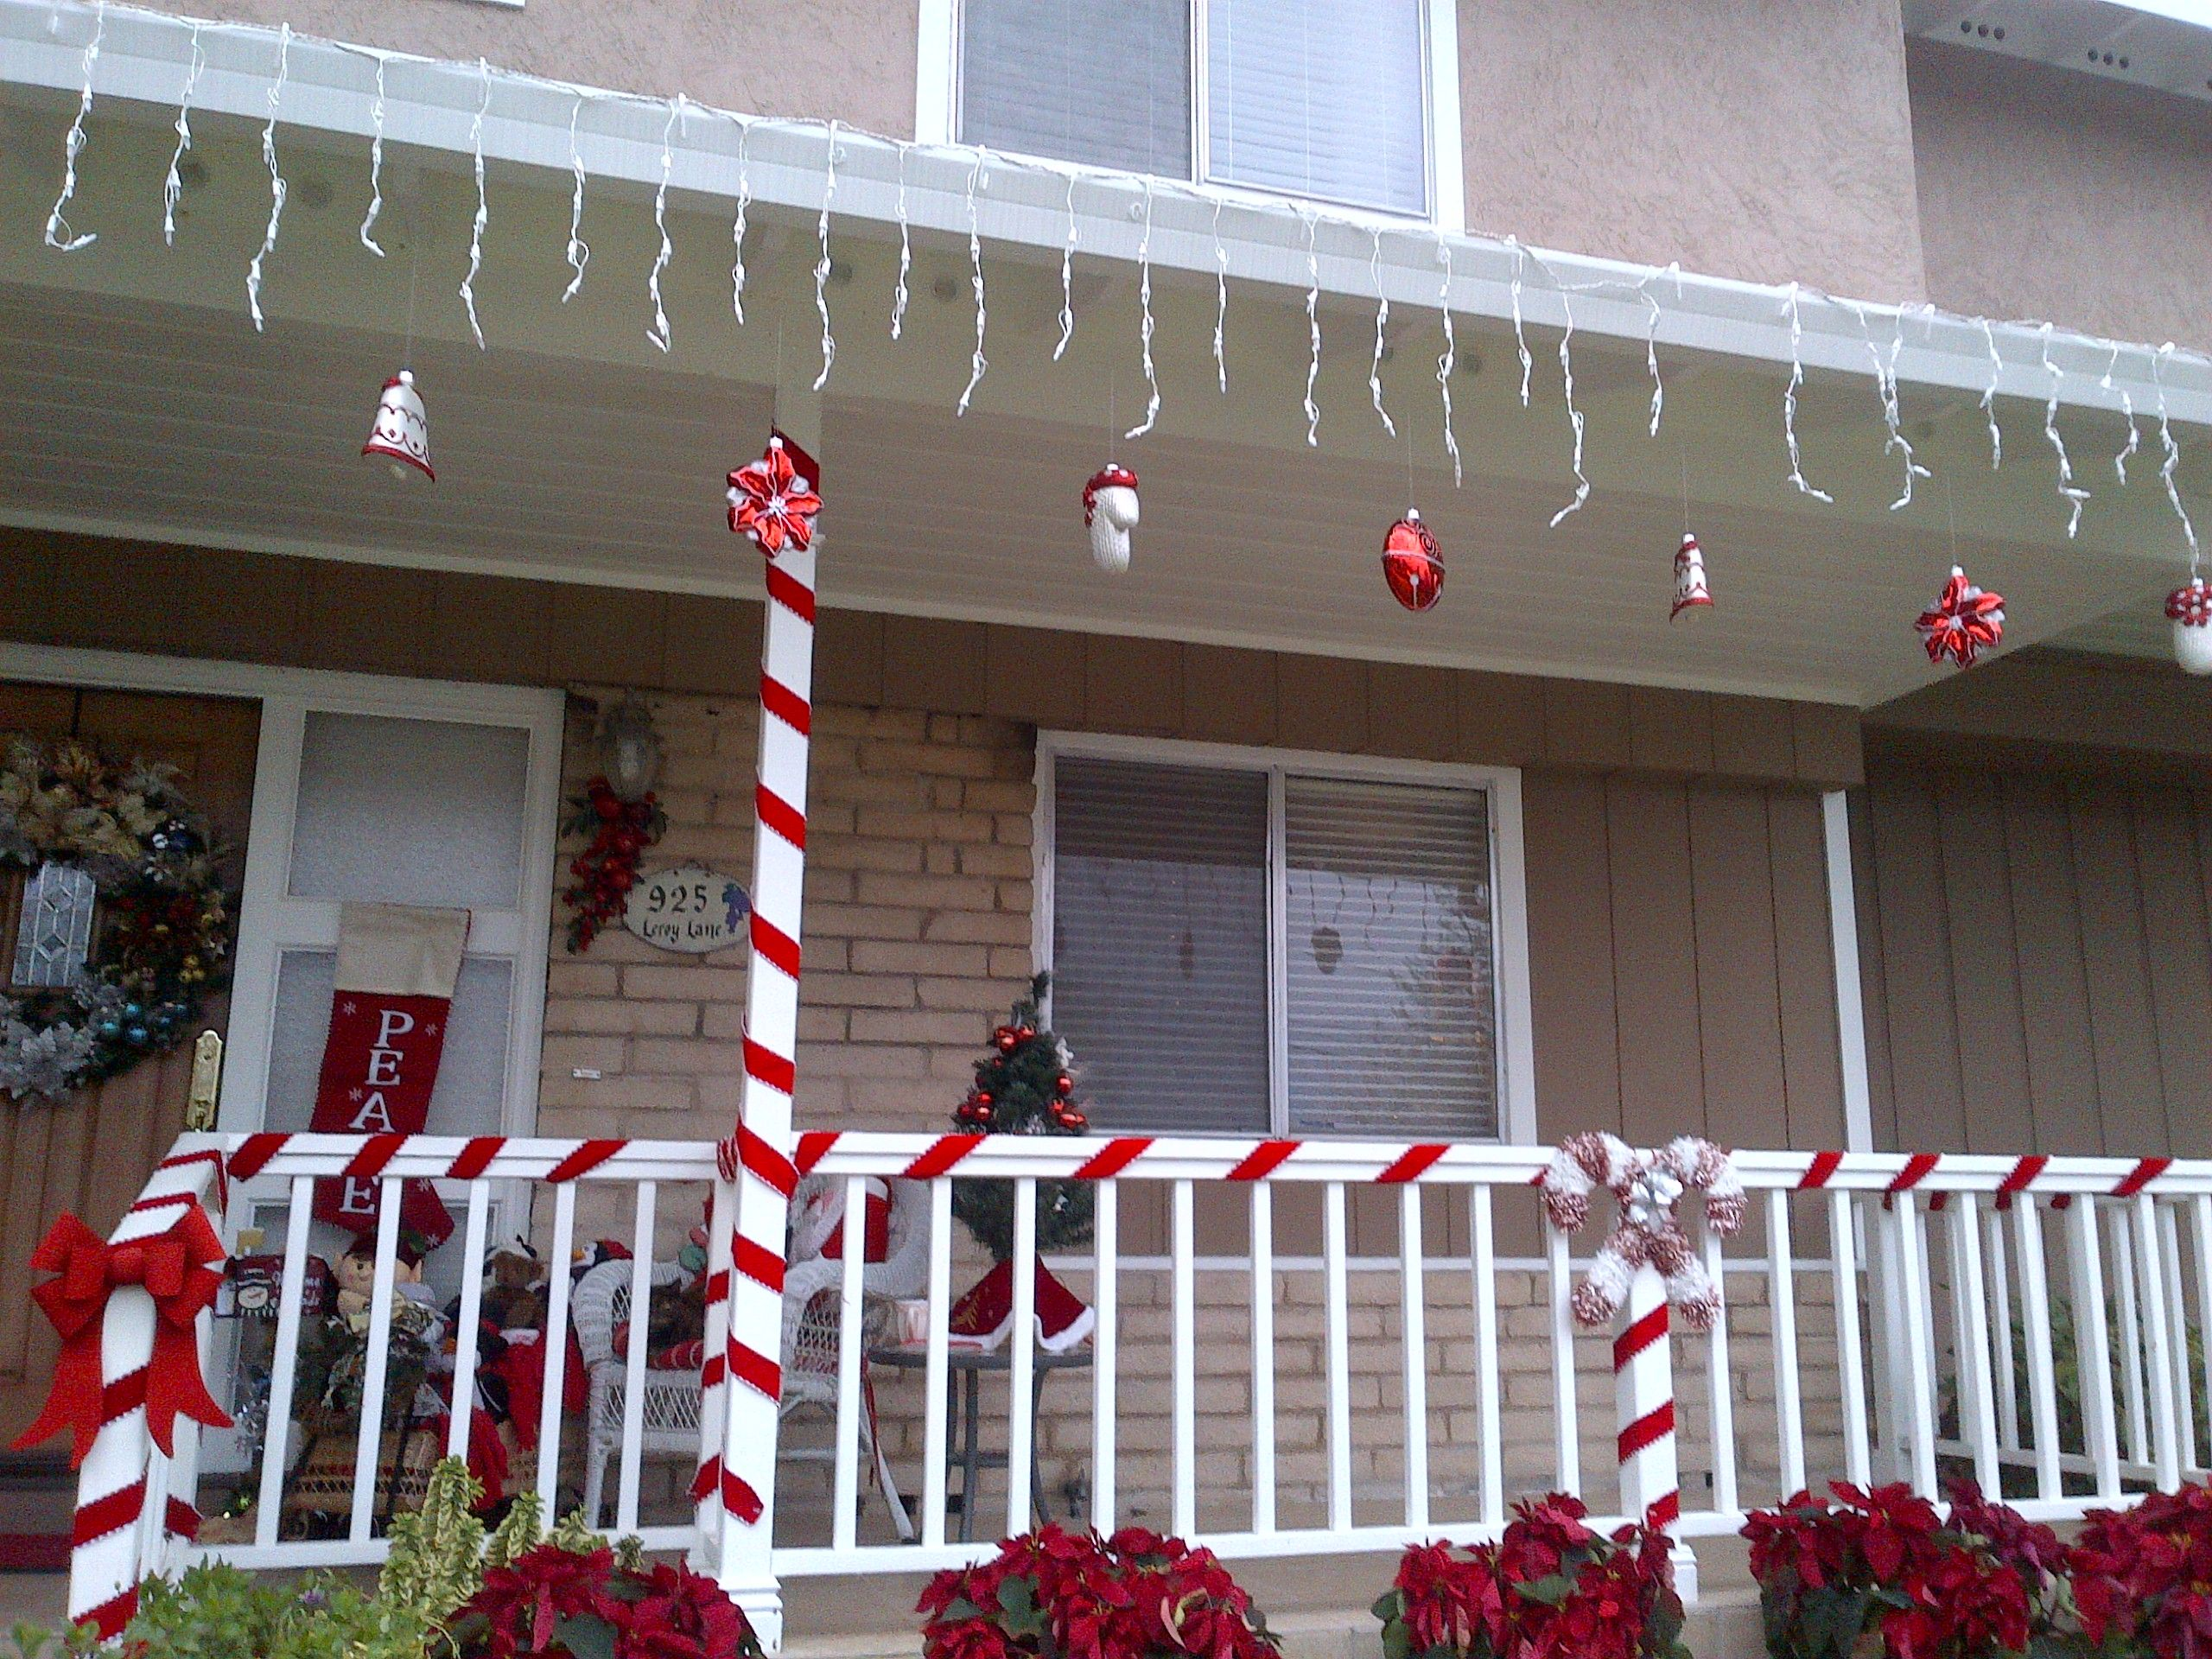 Candy Cane Theme Christmas Decorations On My Front Porch